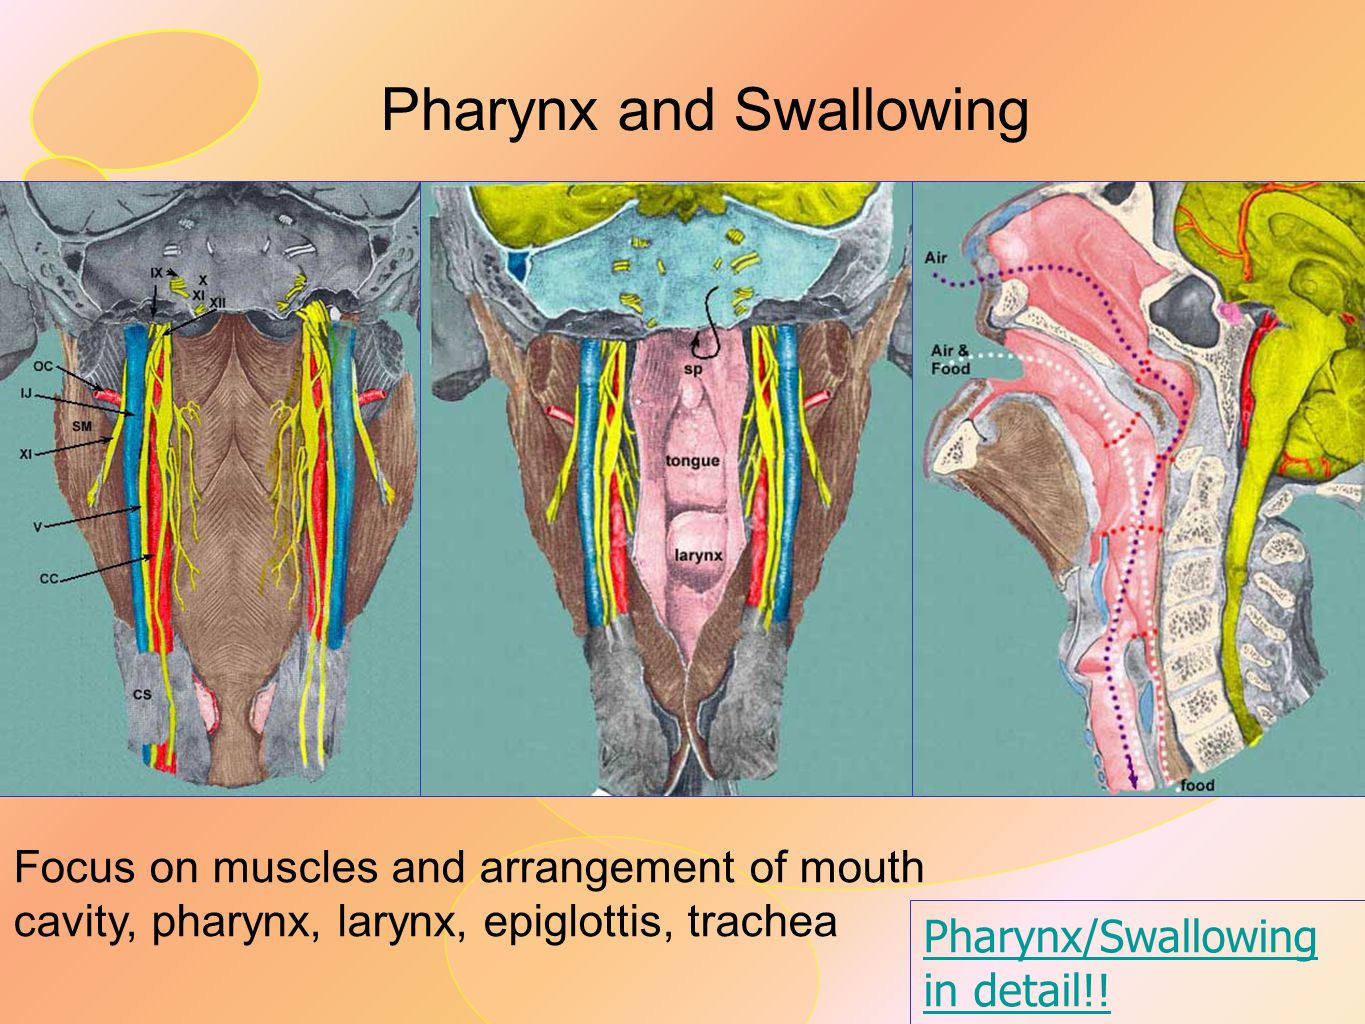 Pharynx and Swallowing Focus on muscles and arrangement of mouth cavity, pharynx, larynx, epiglottis, trachea Pharynx/Swallowing in detail!!